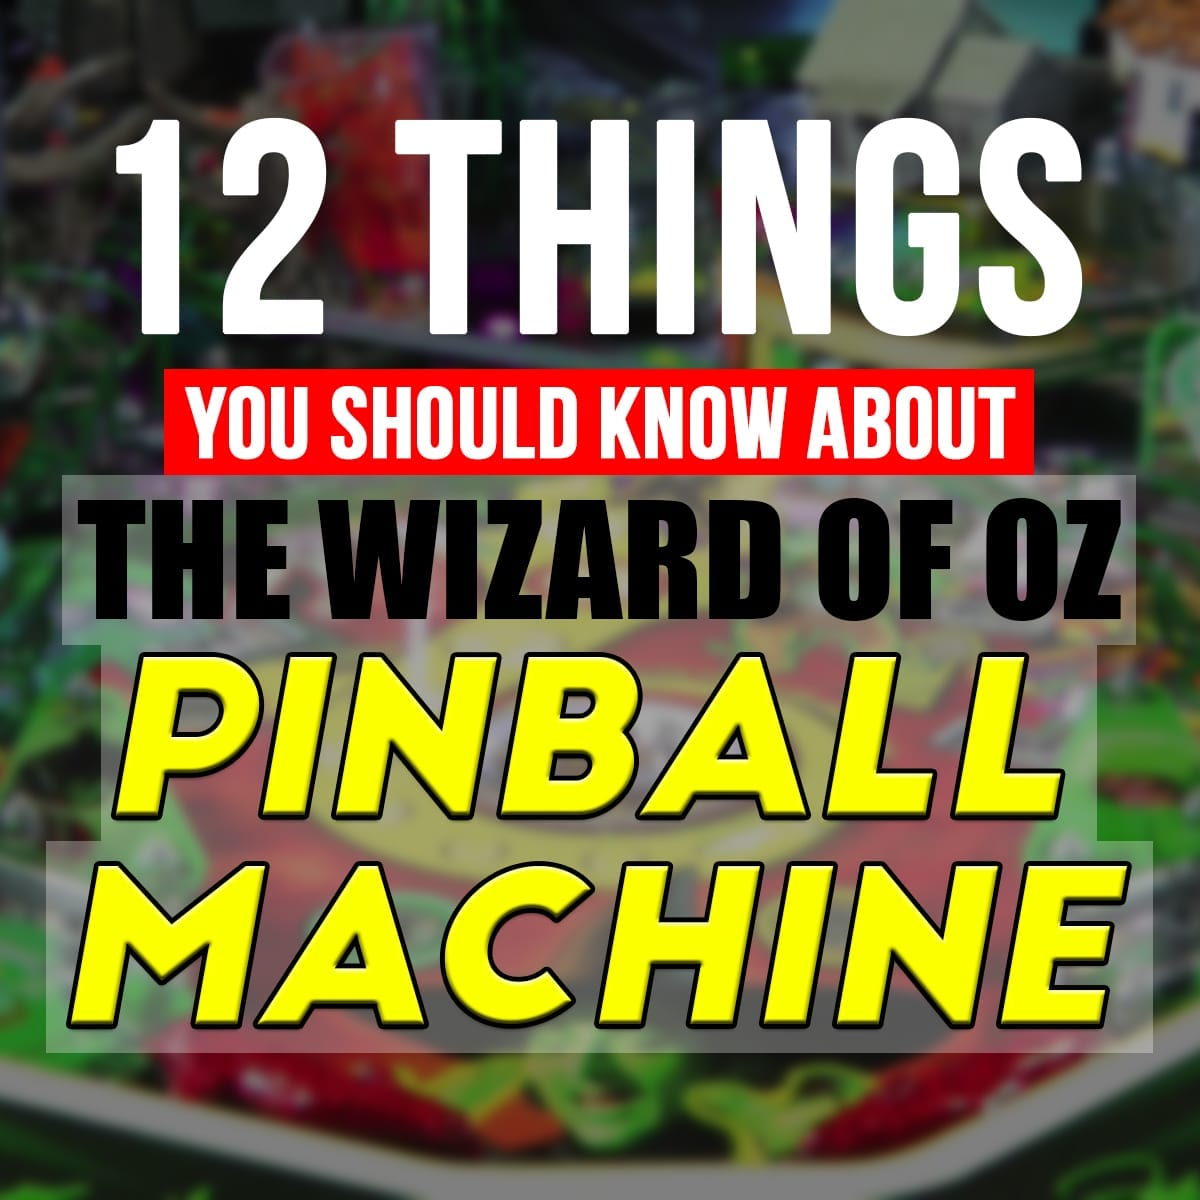 12 Things You Should Know About The Wizard of Oz Pinball